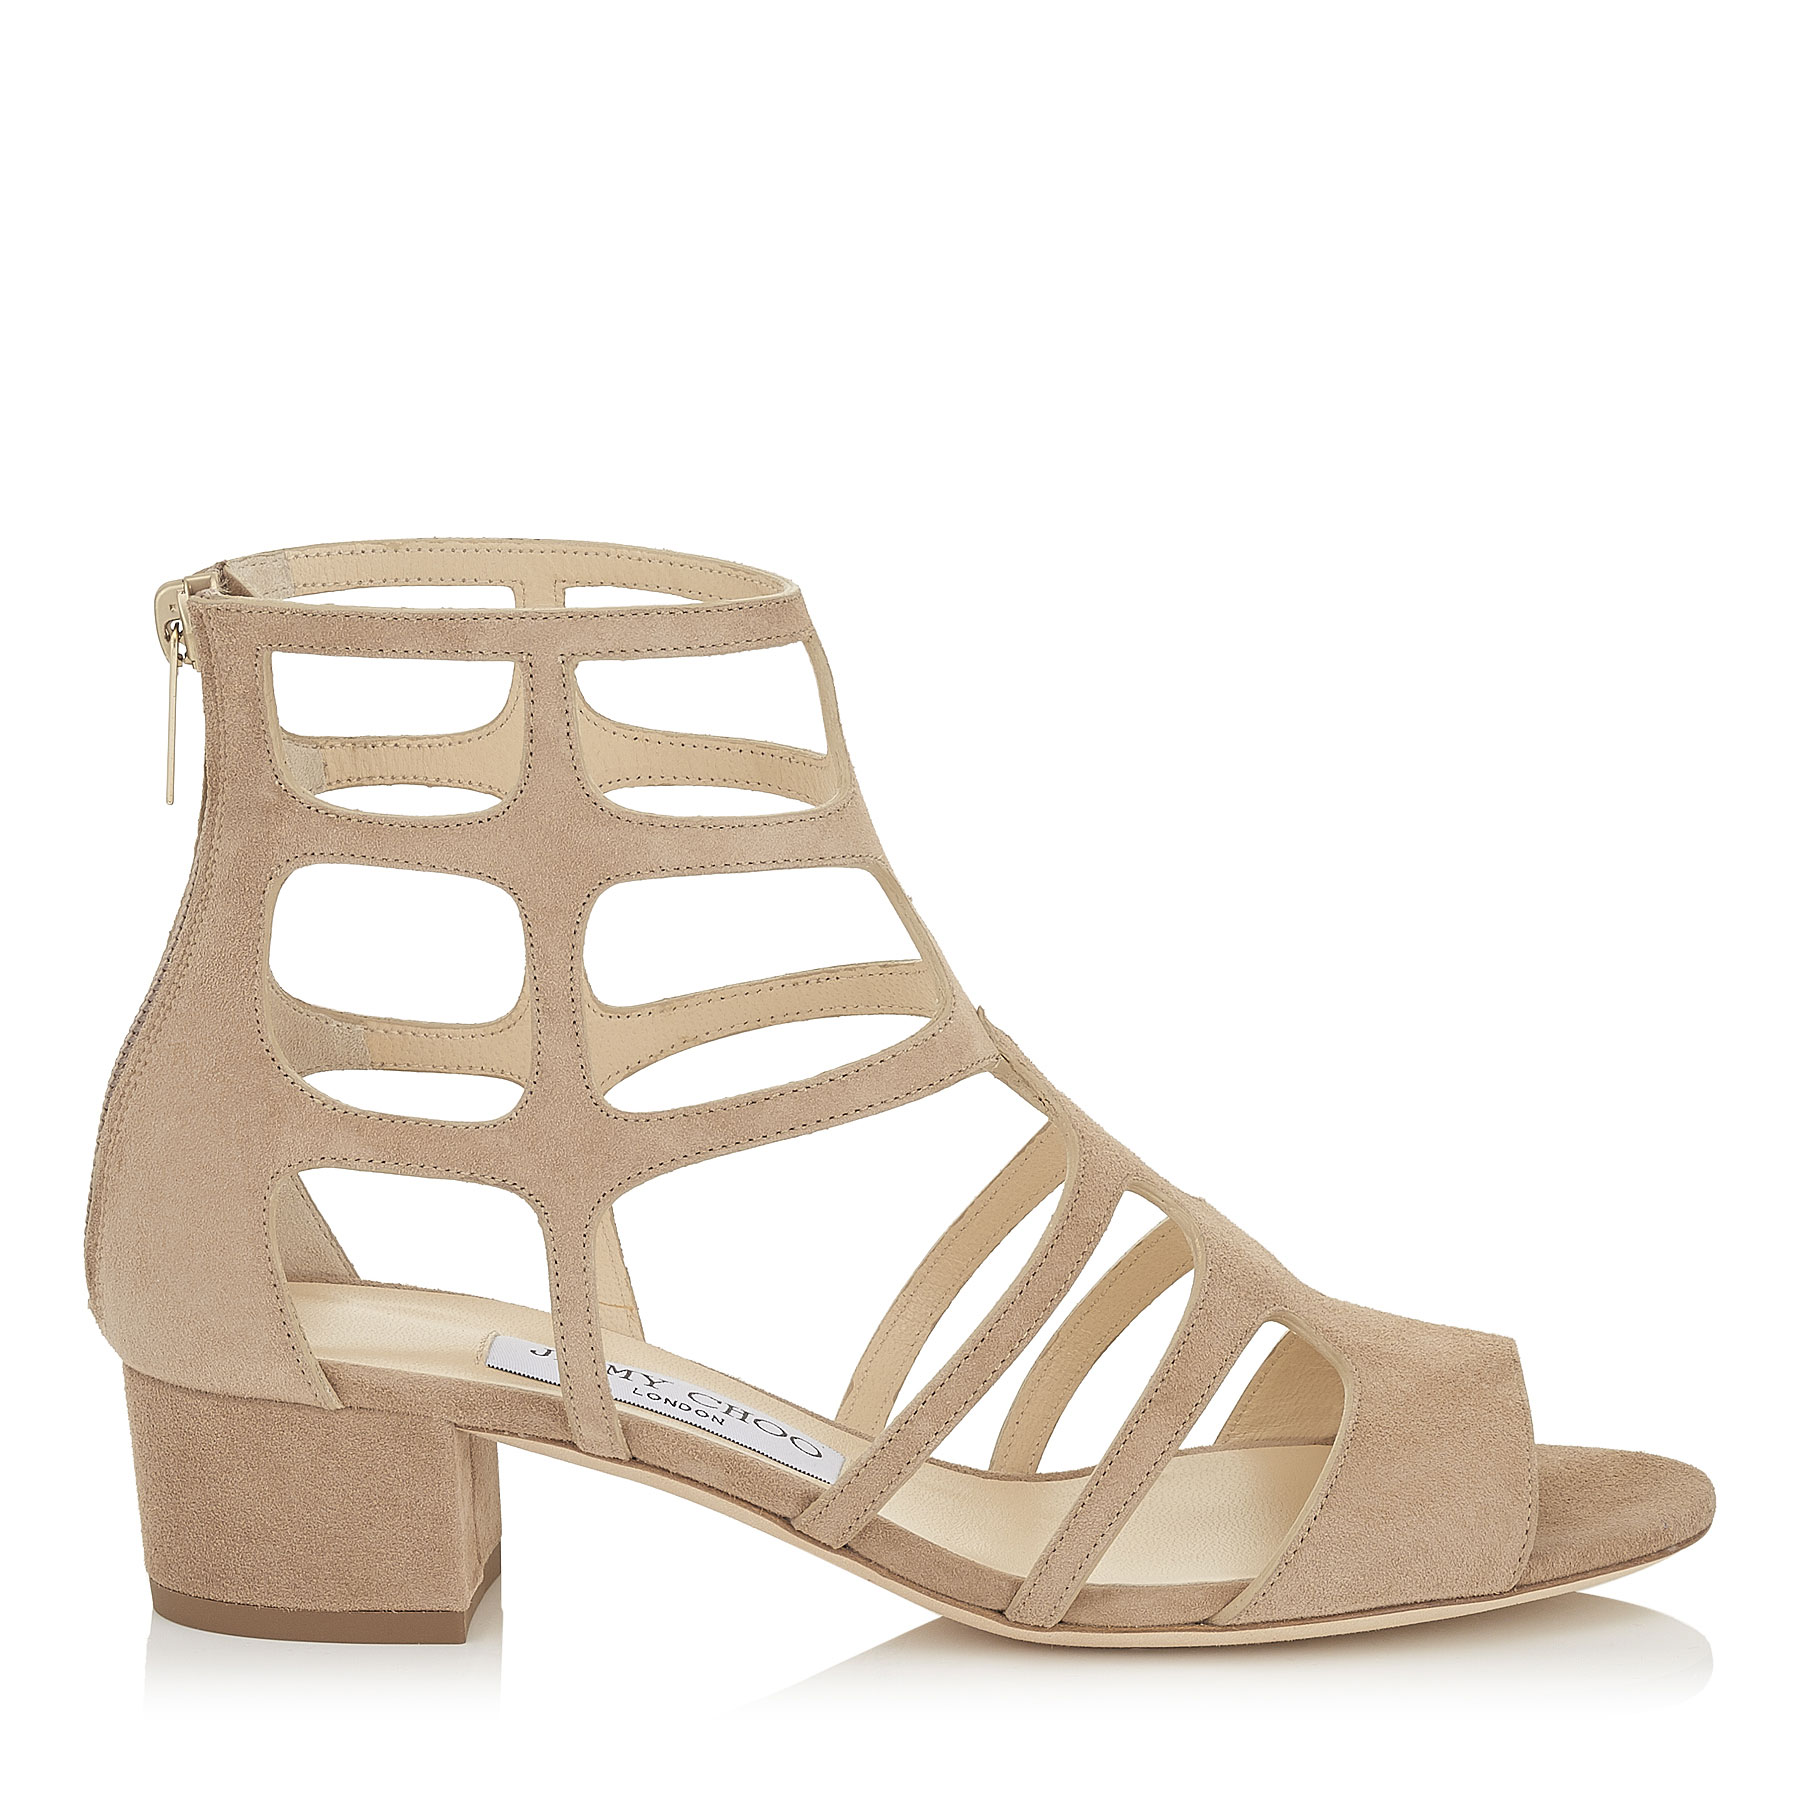 REN 35 Nude Suede Sandals by Jimmy Choo